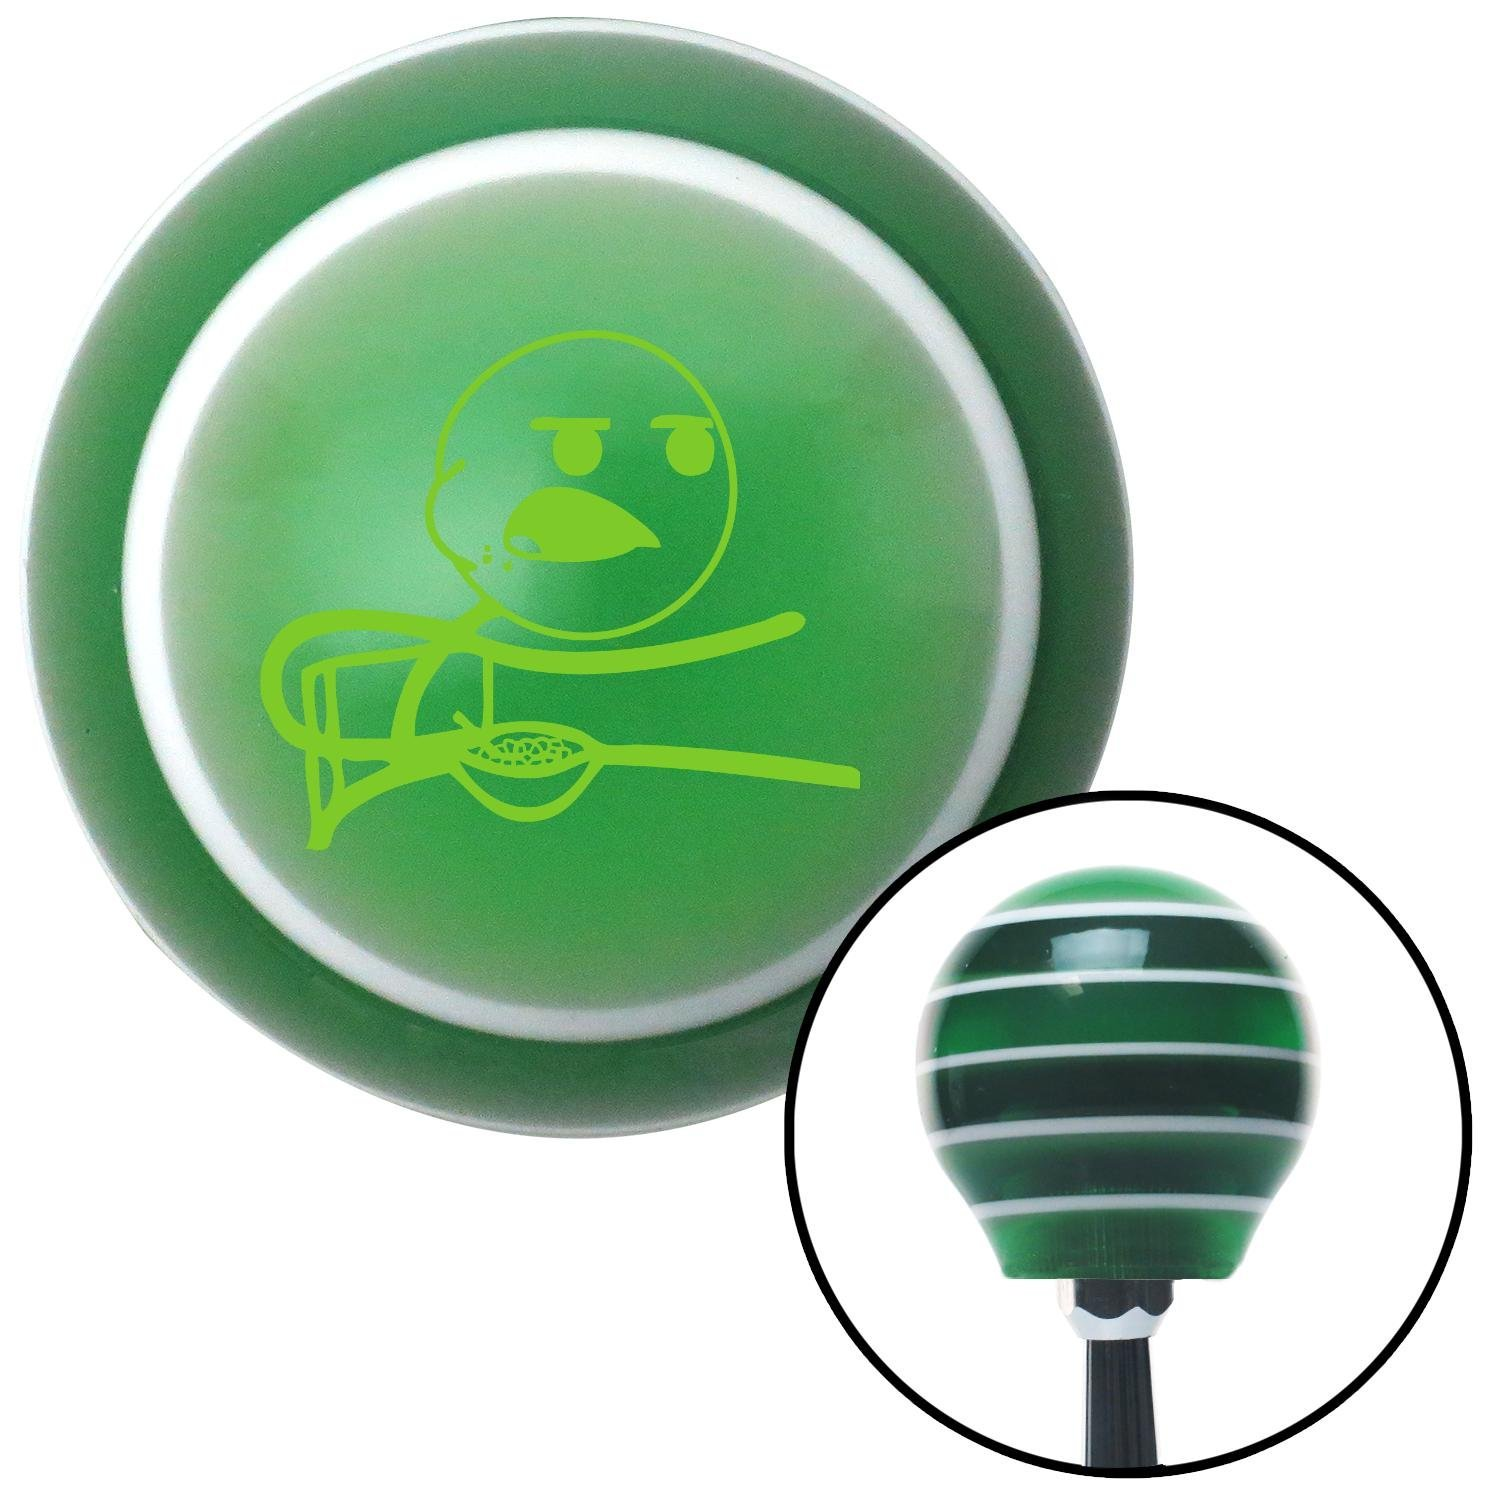 Green Cereal Guy American Shifter 123921 Green Stripe Shift Knob with M16 x 1.5 Insert